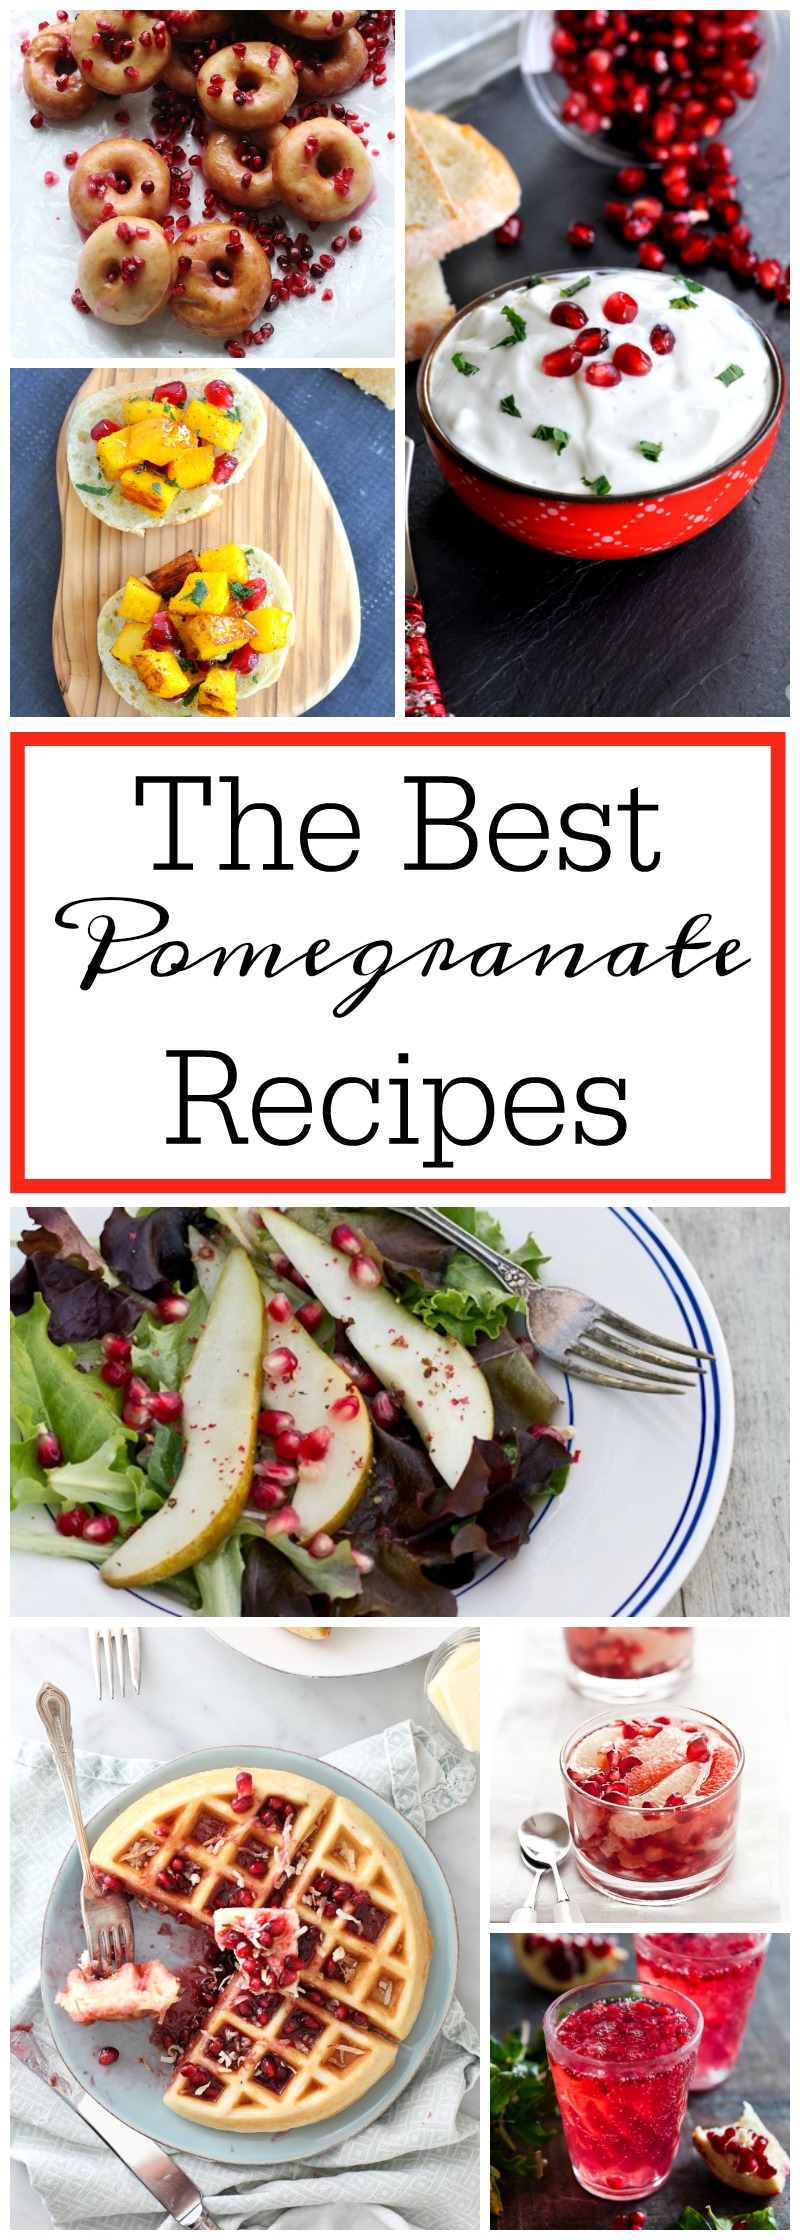 The Best Pomegranate Recipes Ever